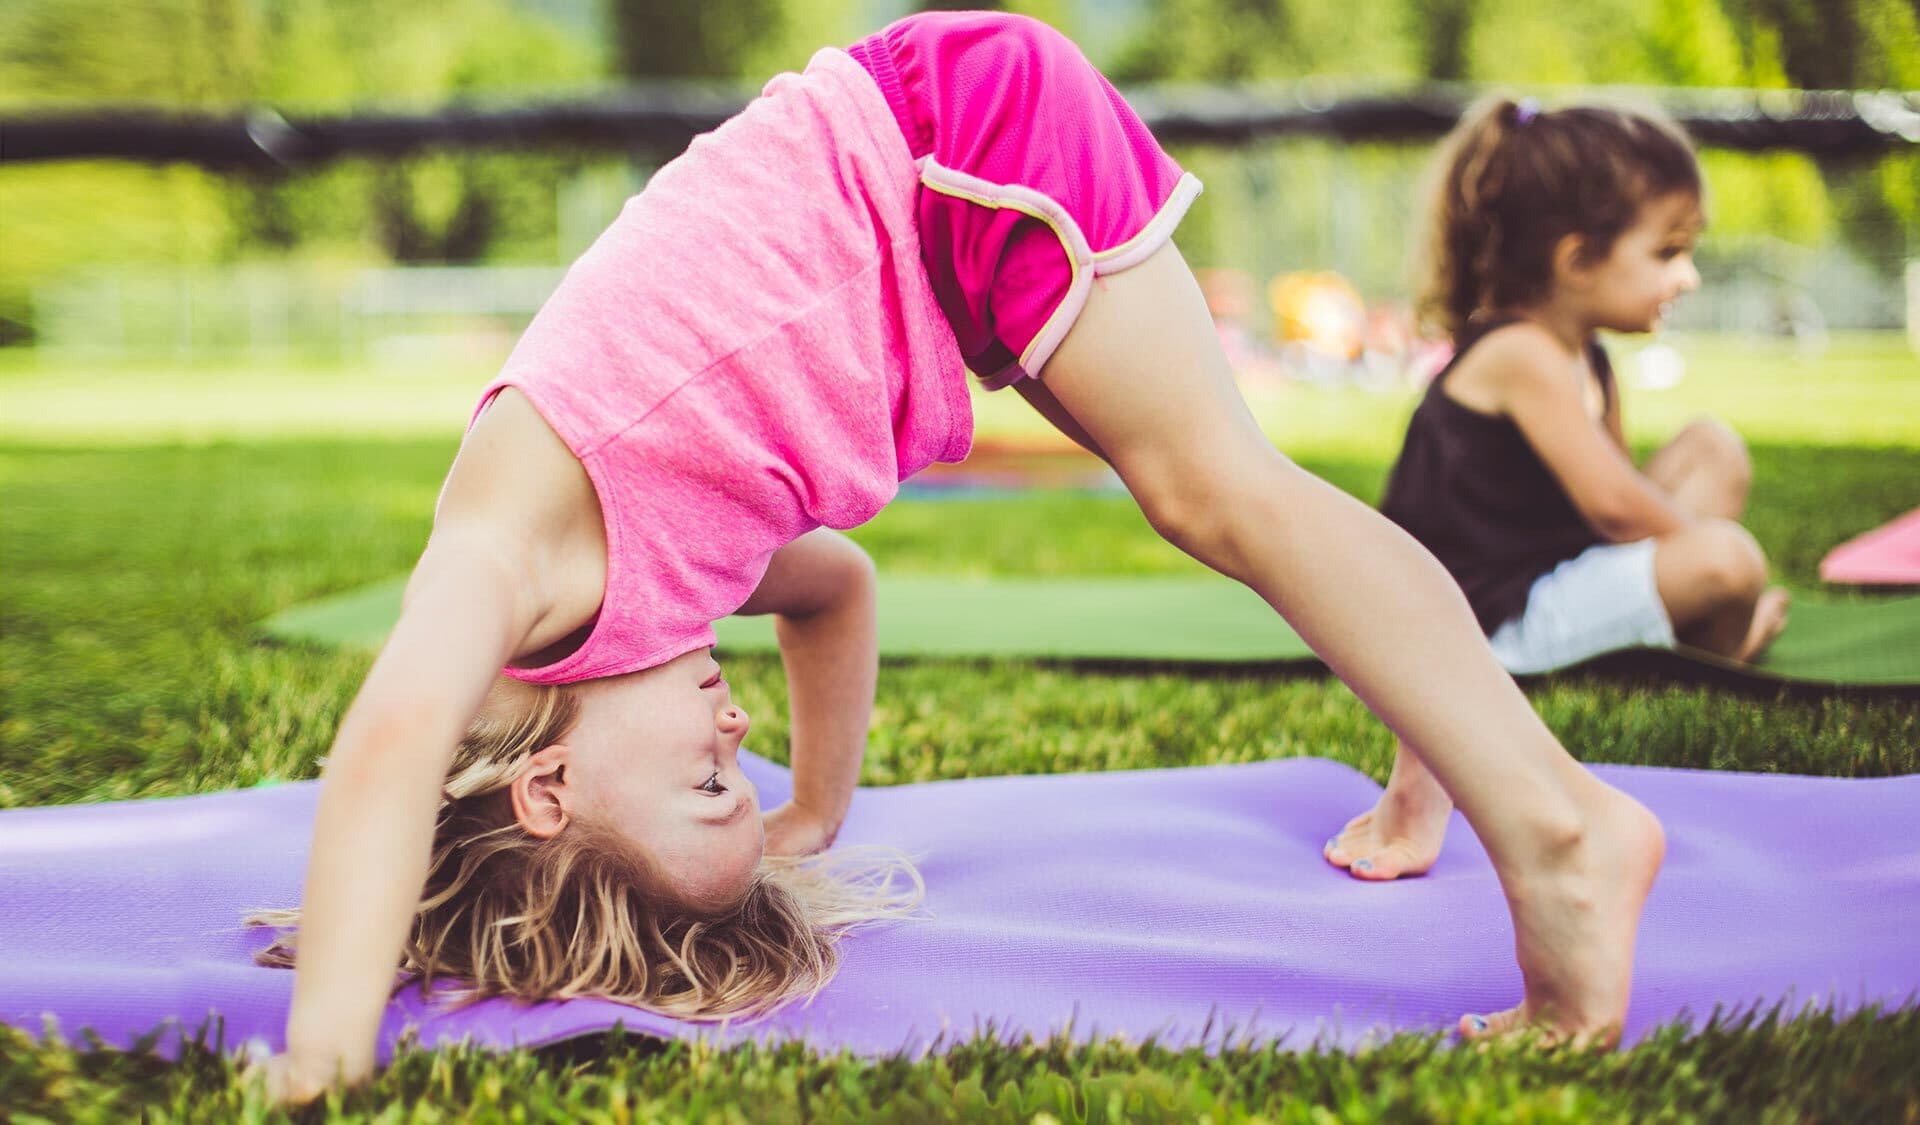 Kinder machen Yoga